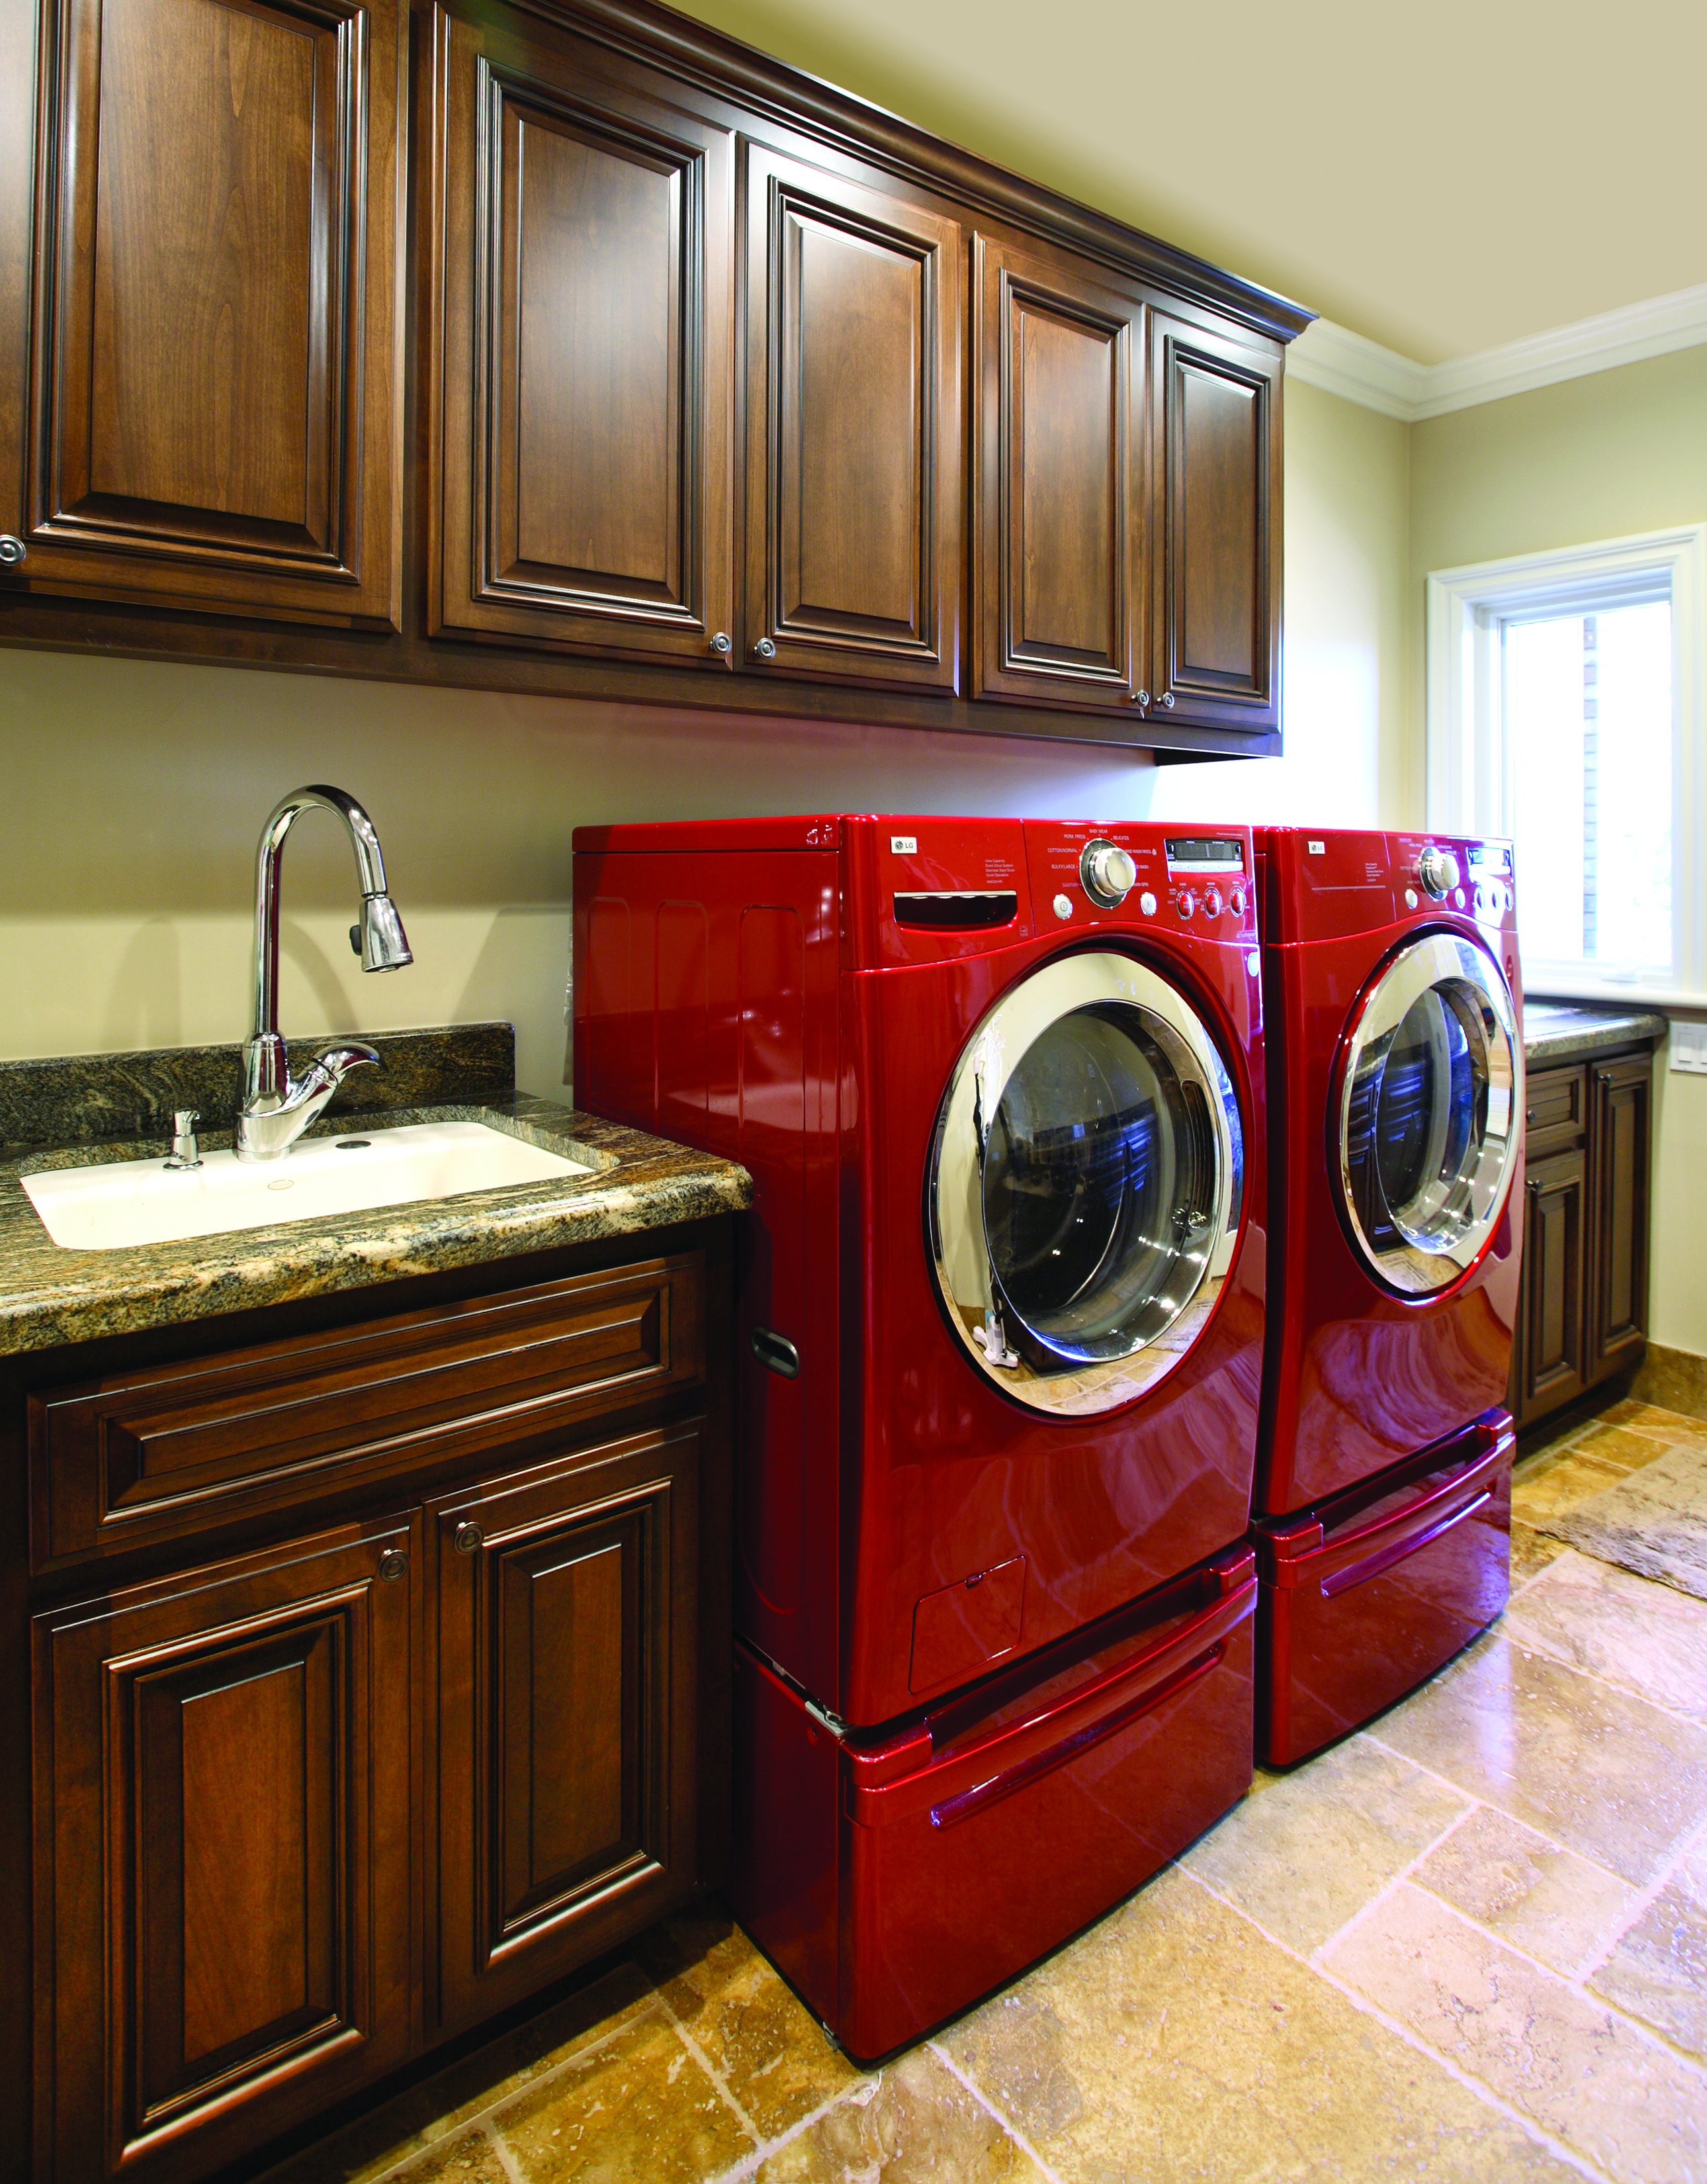 Traditional Stained Laundry Room Cabinets with a Beautiful Granite Countertop and Red, LG Washer - Dryer